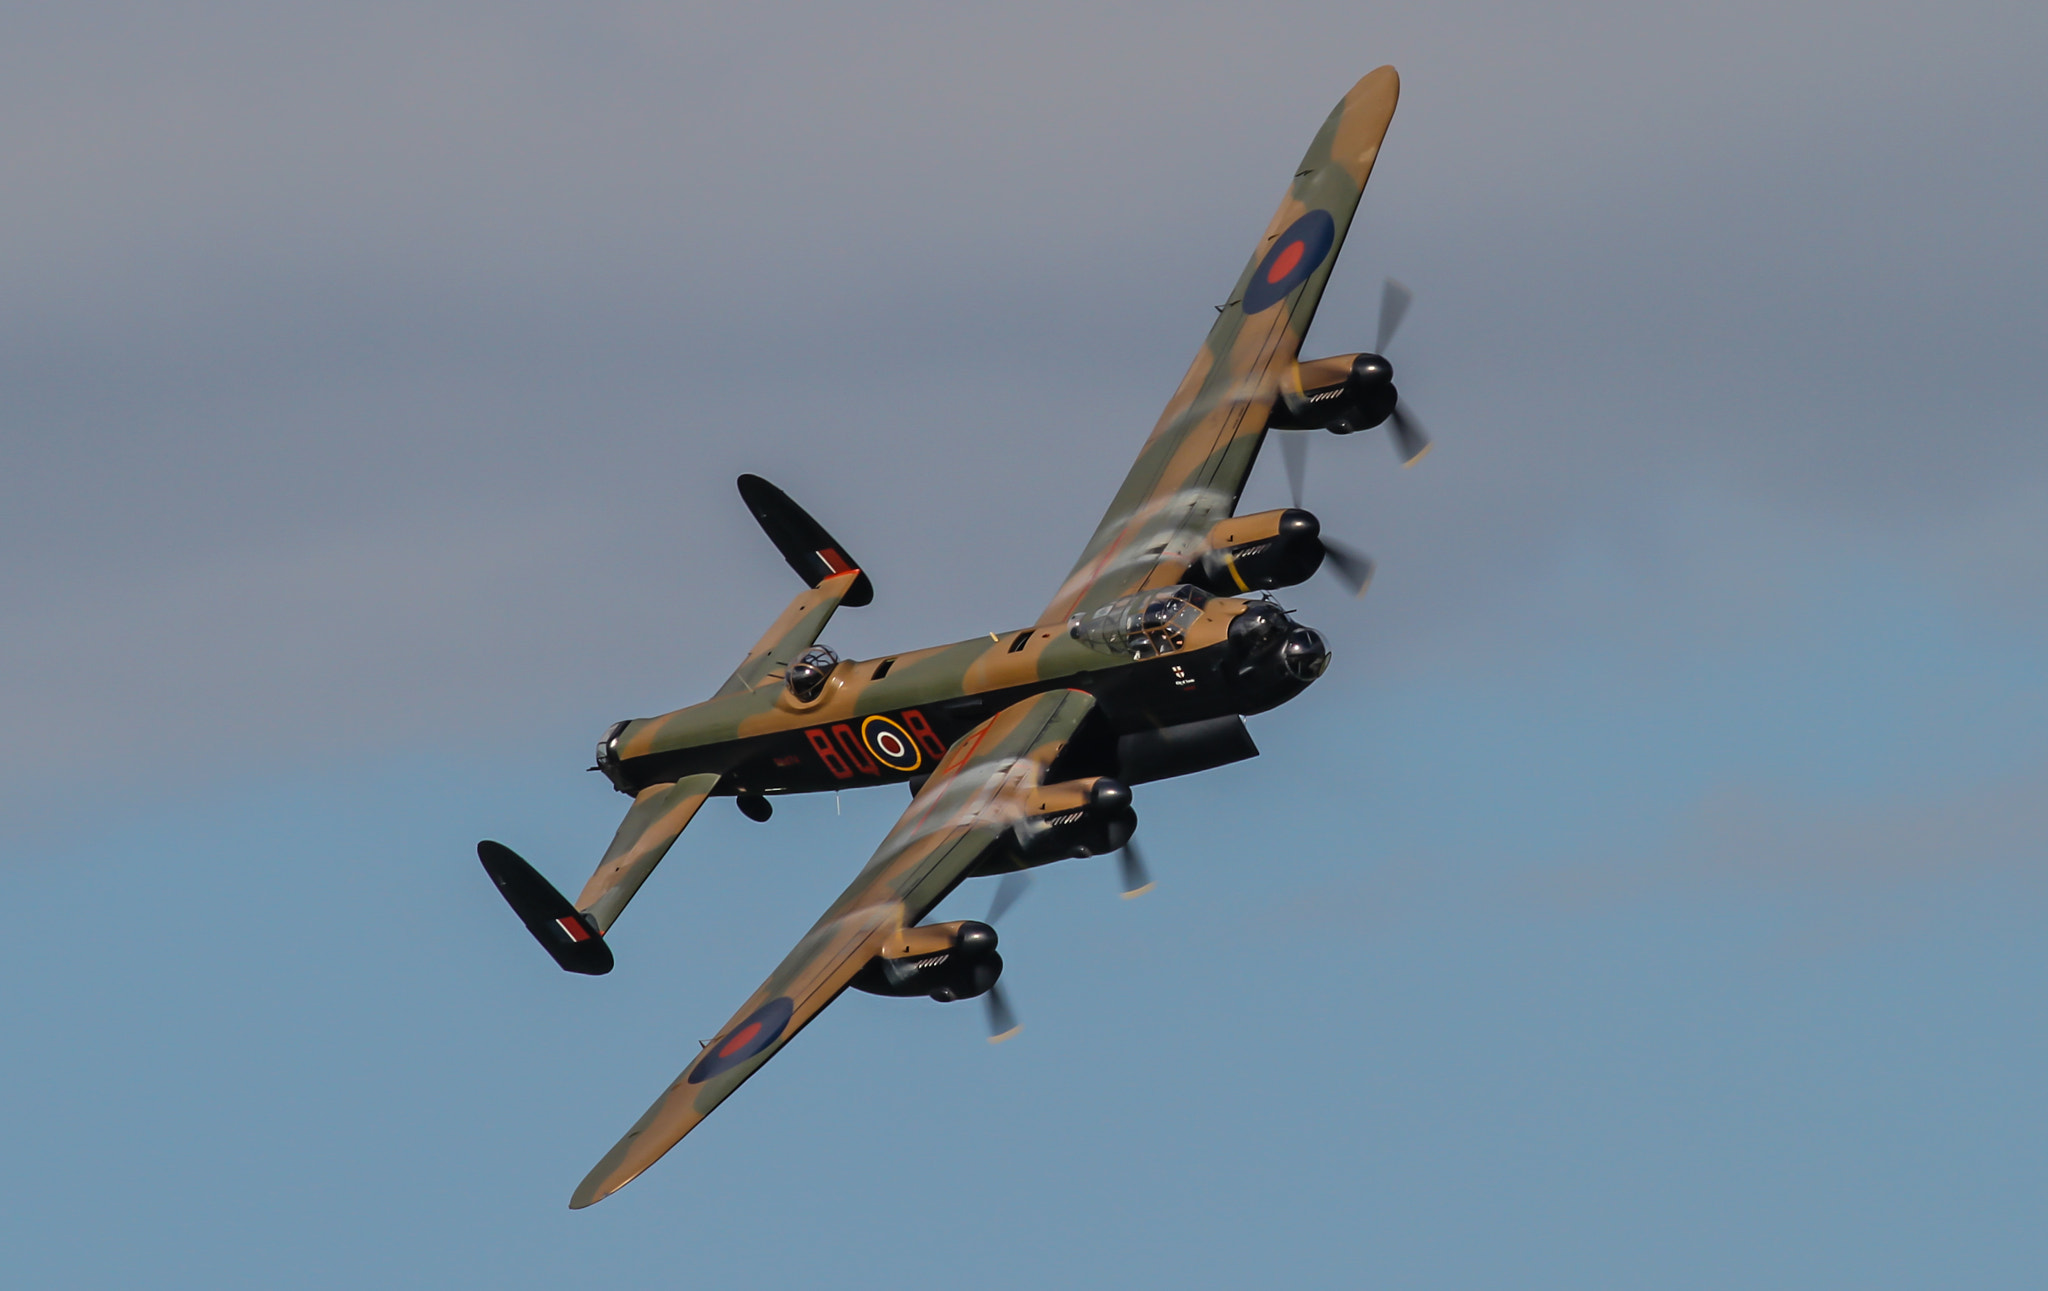 Photograph Avro Lancaster 2 by Andrew Wickens on 500px